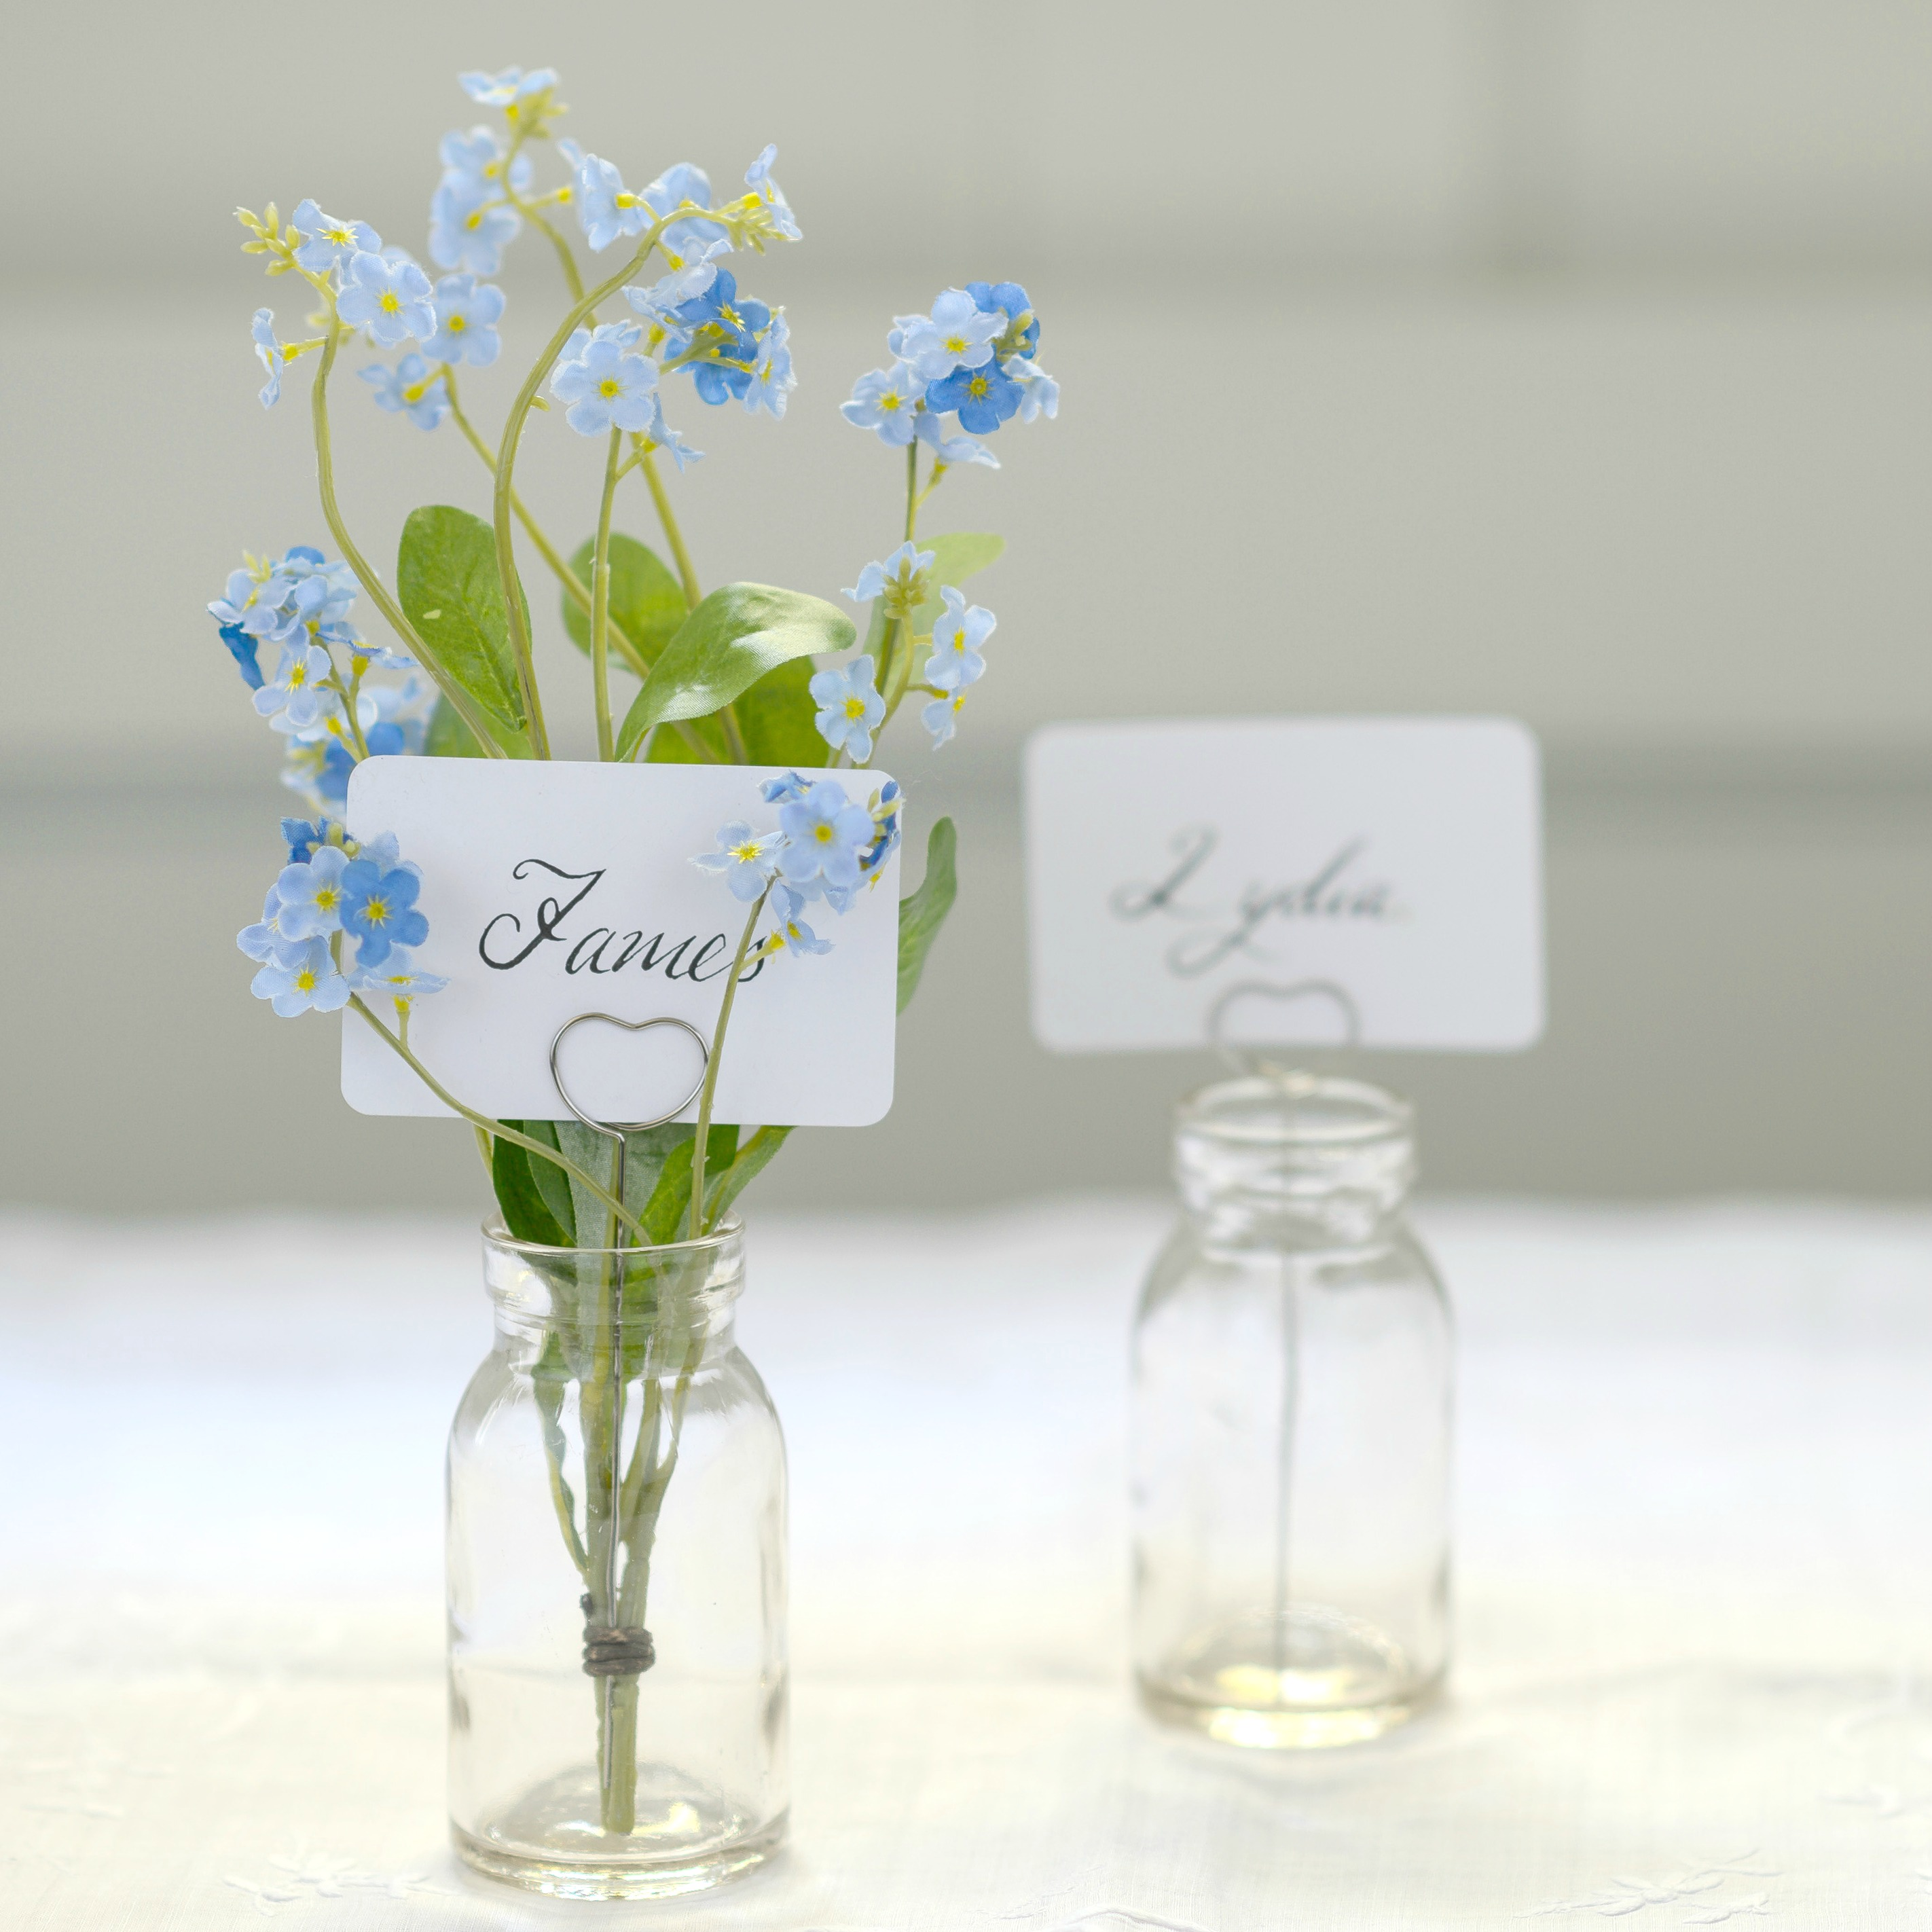 The Woodland Log Place Name Setting Set Flower Studio Shop